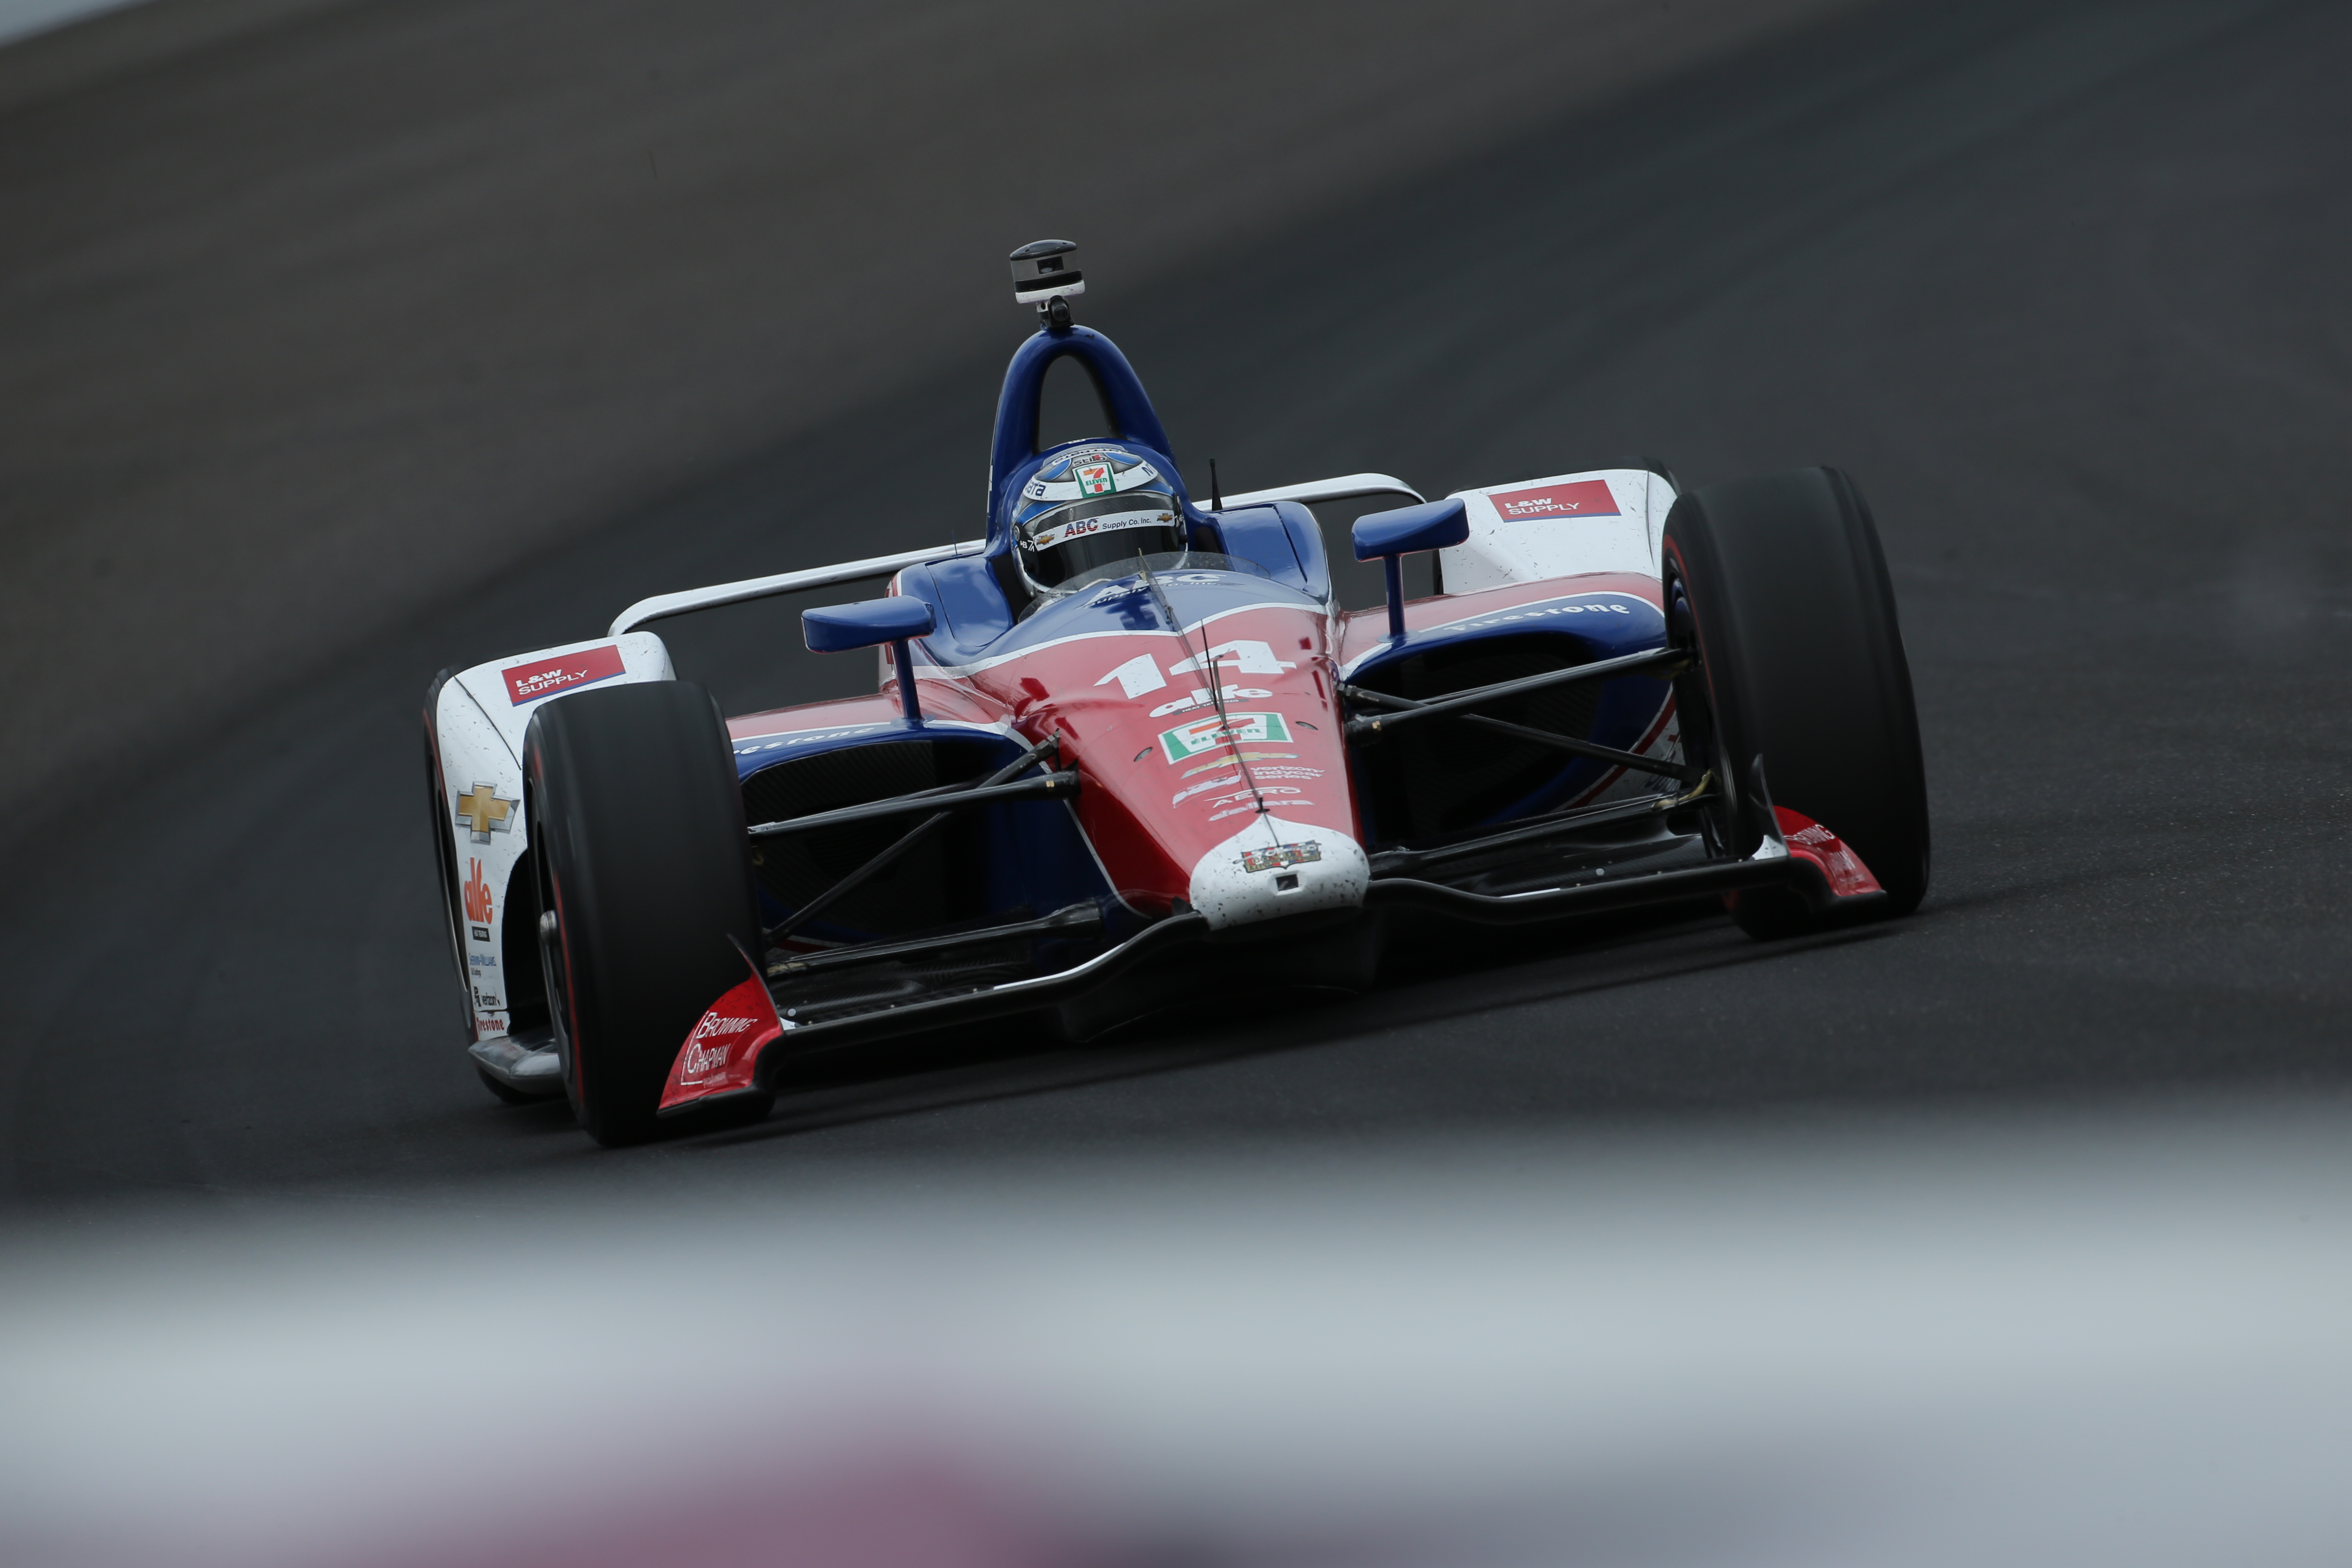 Tony Kanaan leads final Indy 500 practice on Carb Day